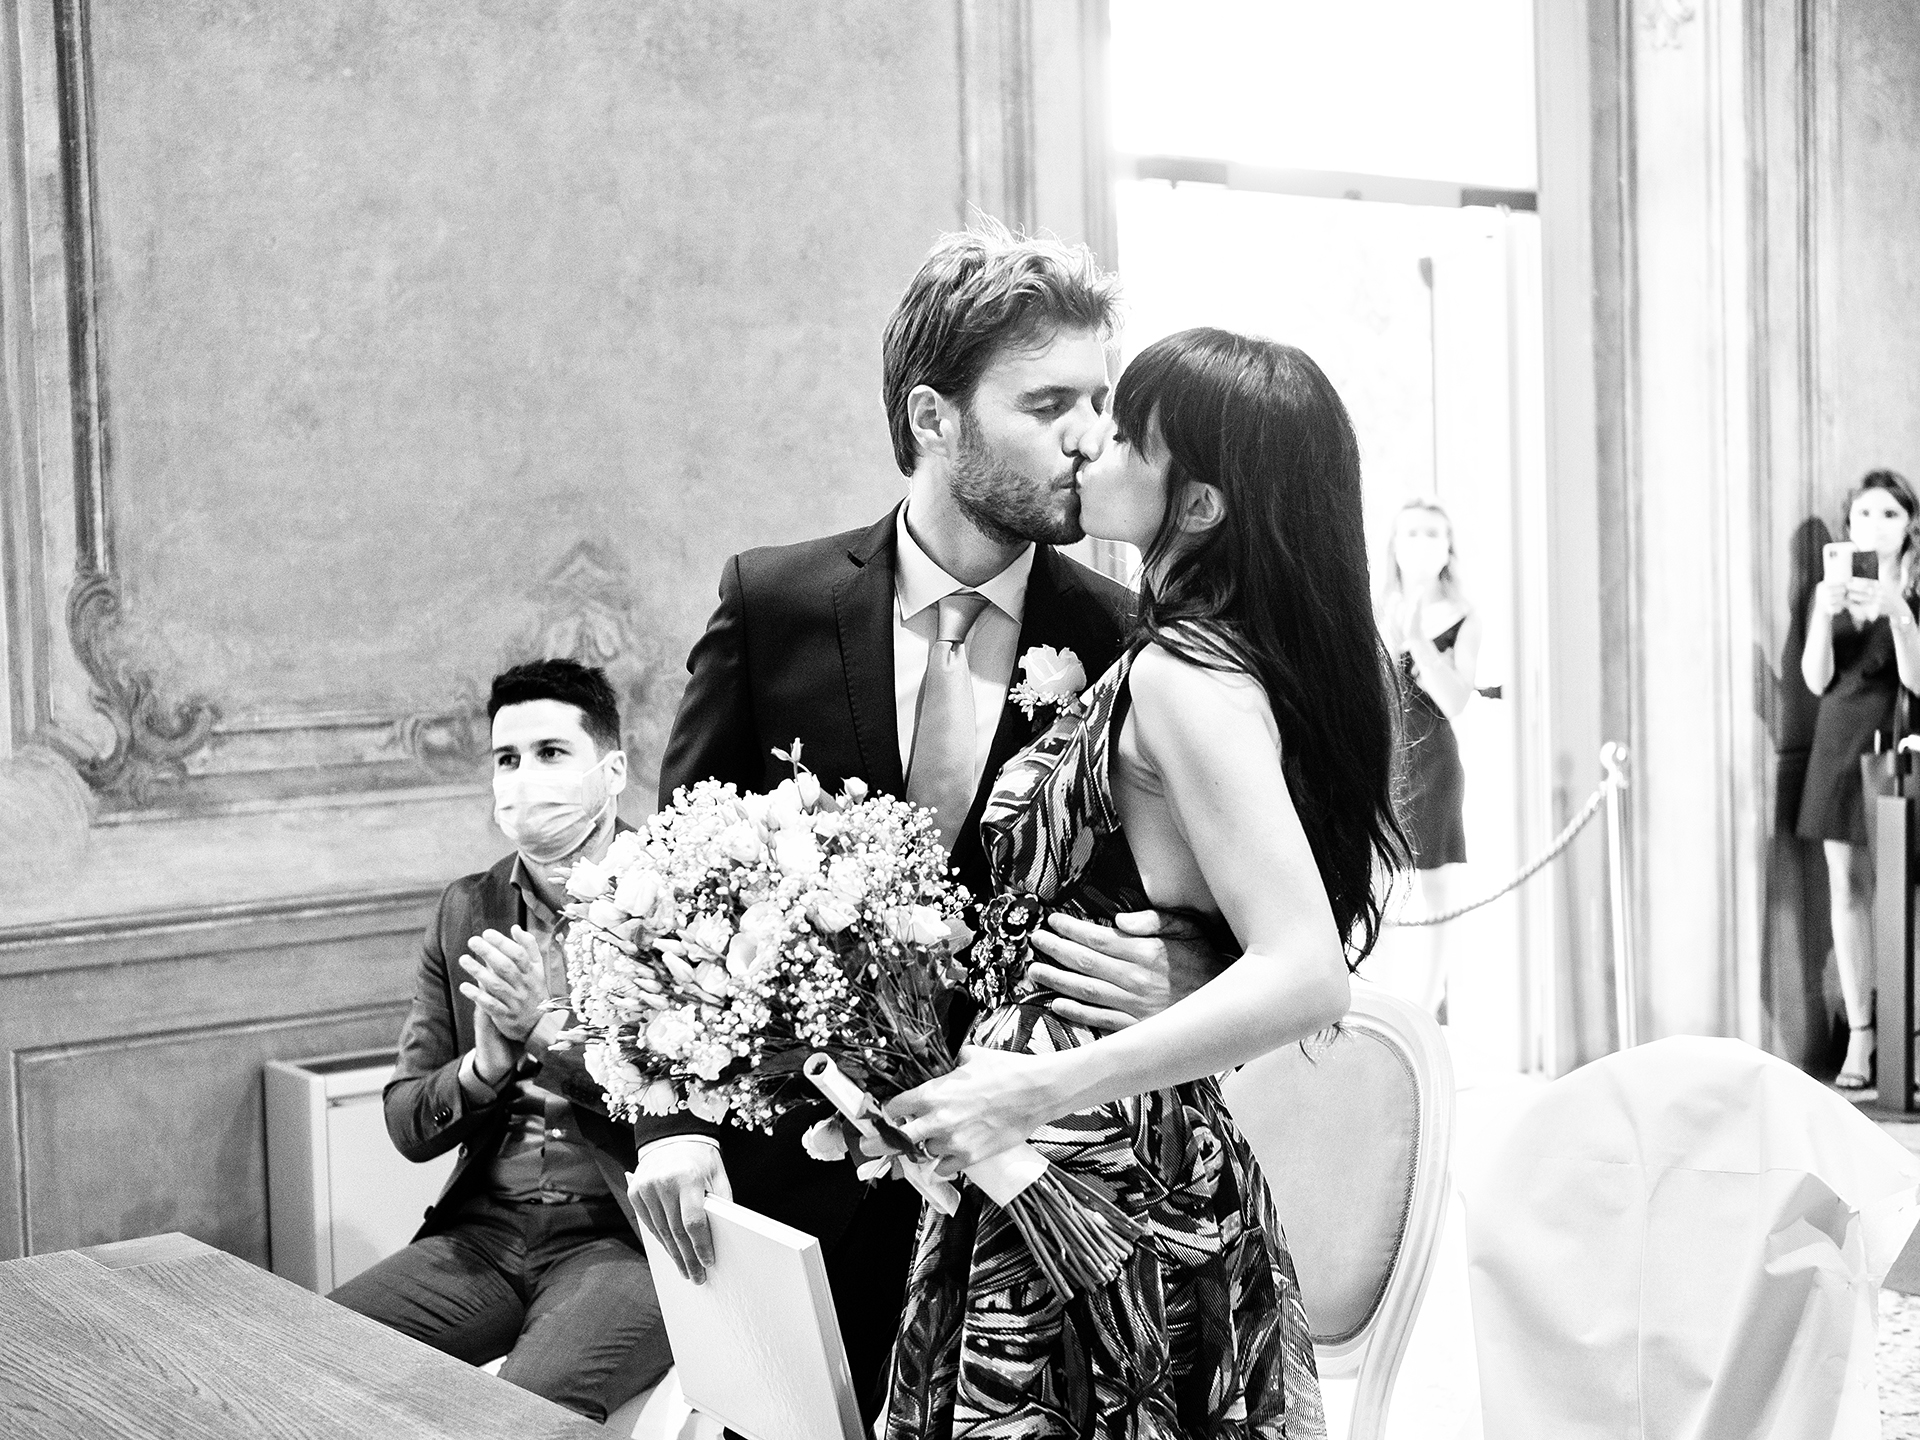 Wedding Picture of Villa Litta Modignani | After the ceremony is complete, the bride and groom begin their marriage with a kiss